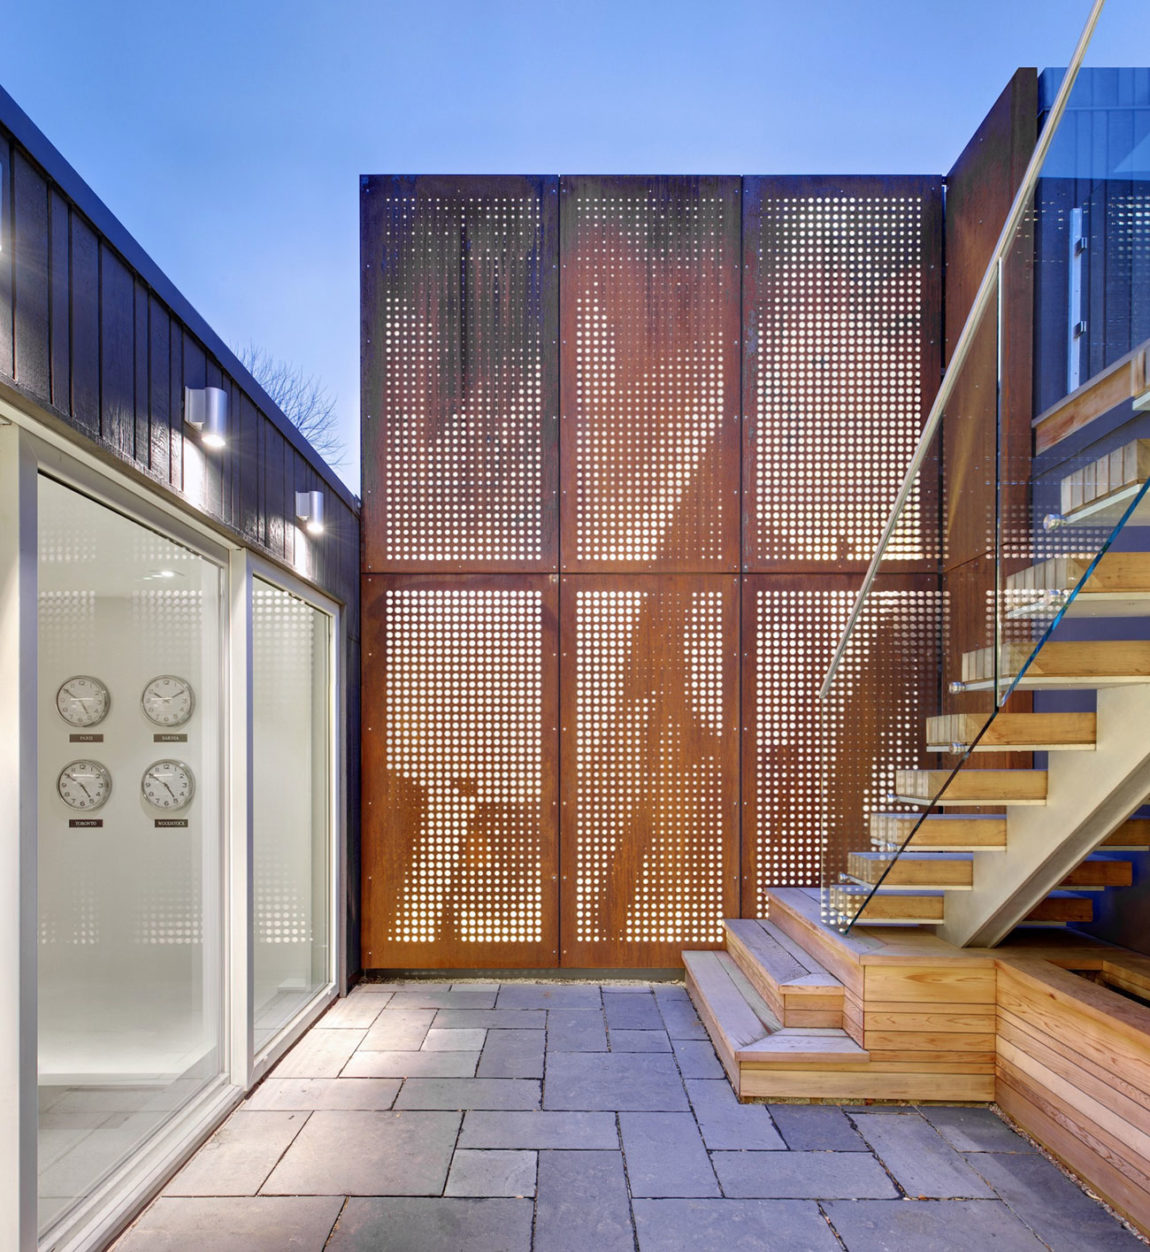 Mount Pleasant House by Roundabout Studio (21)